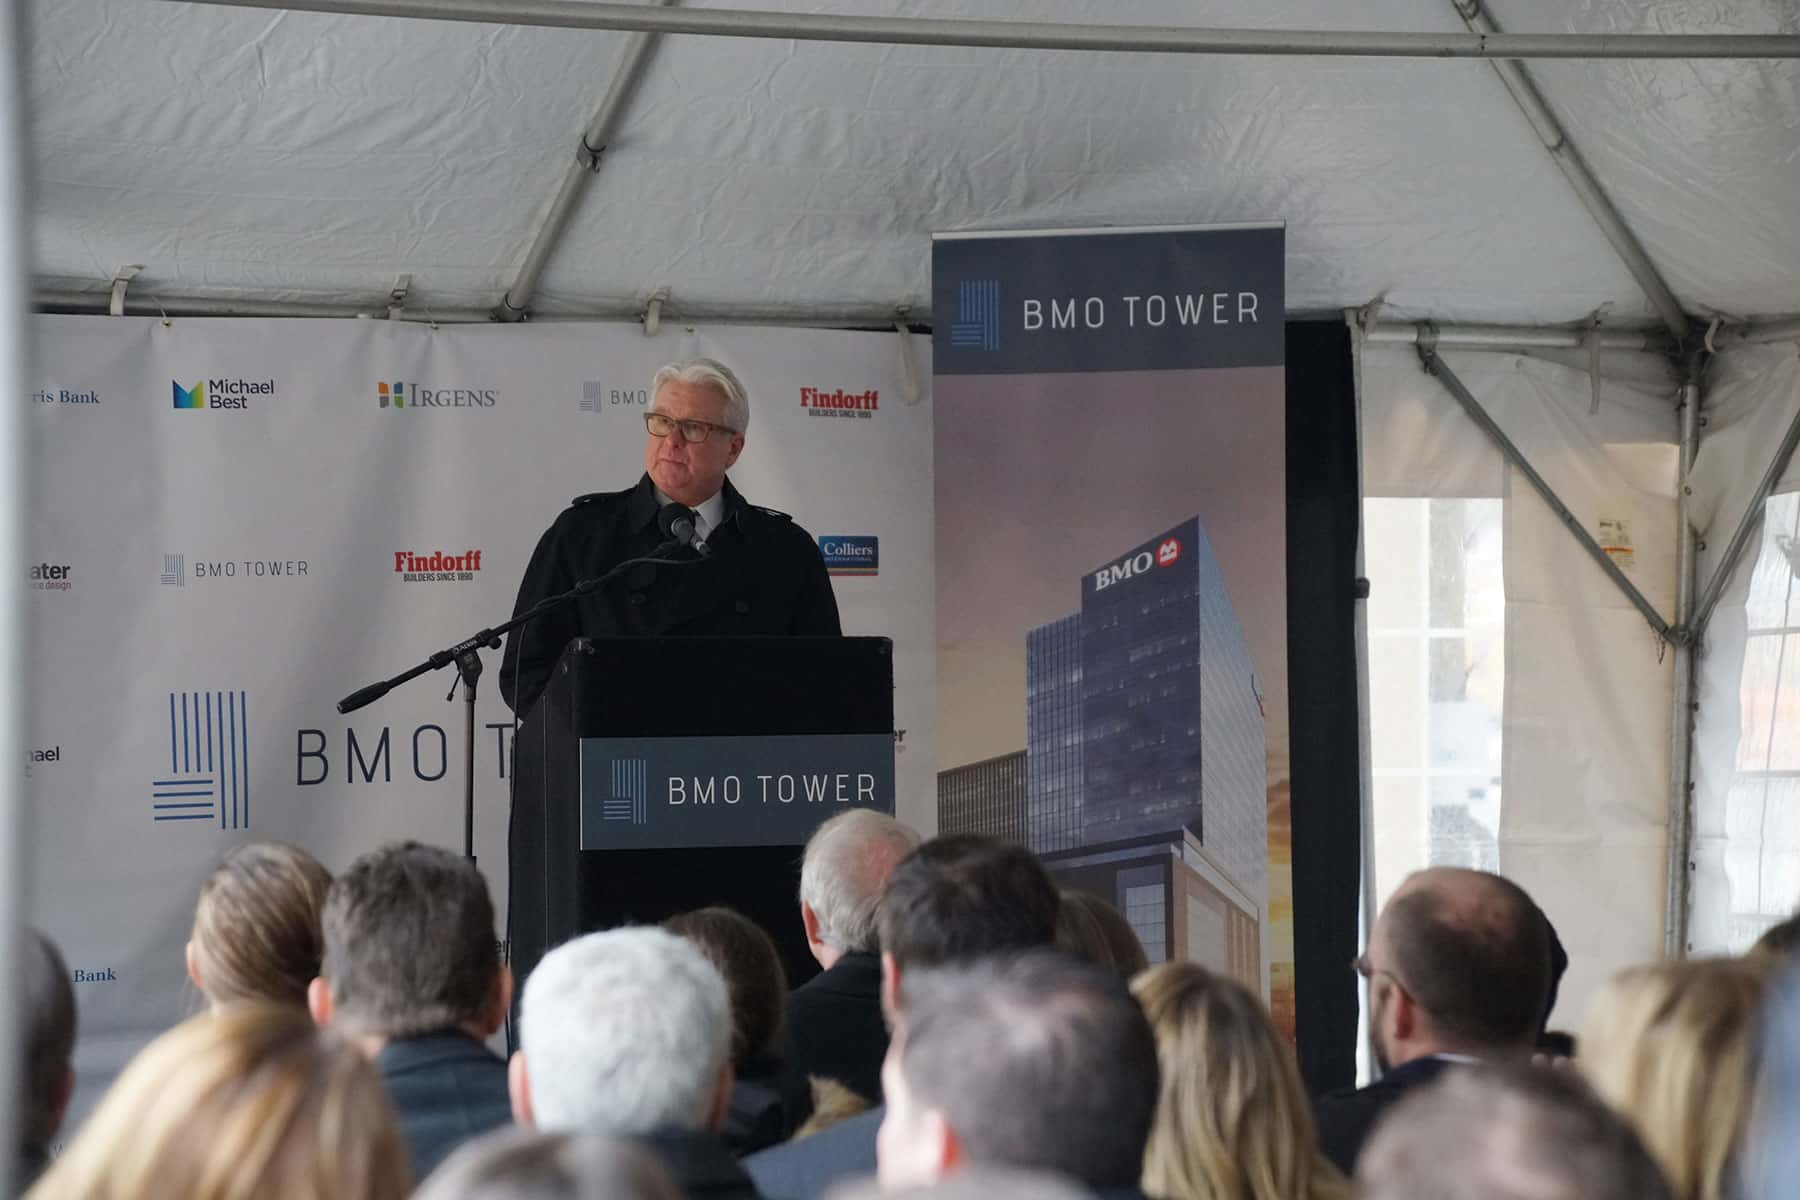 Bmo tower embarks on downtown construction with groundbreaking 111617bmotower327 malvernweather Choice Image